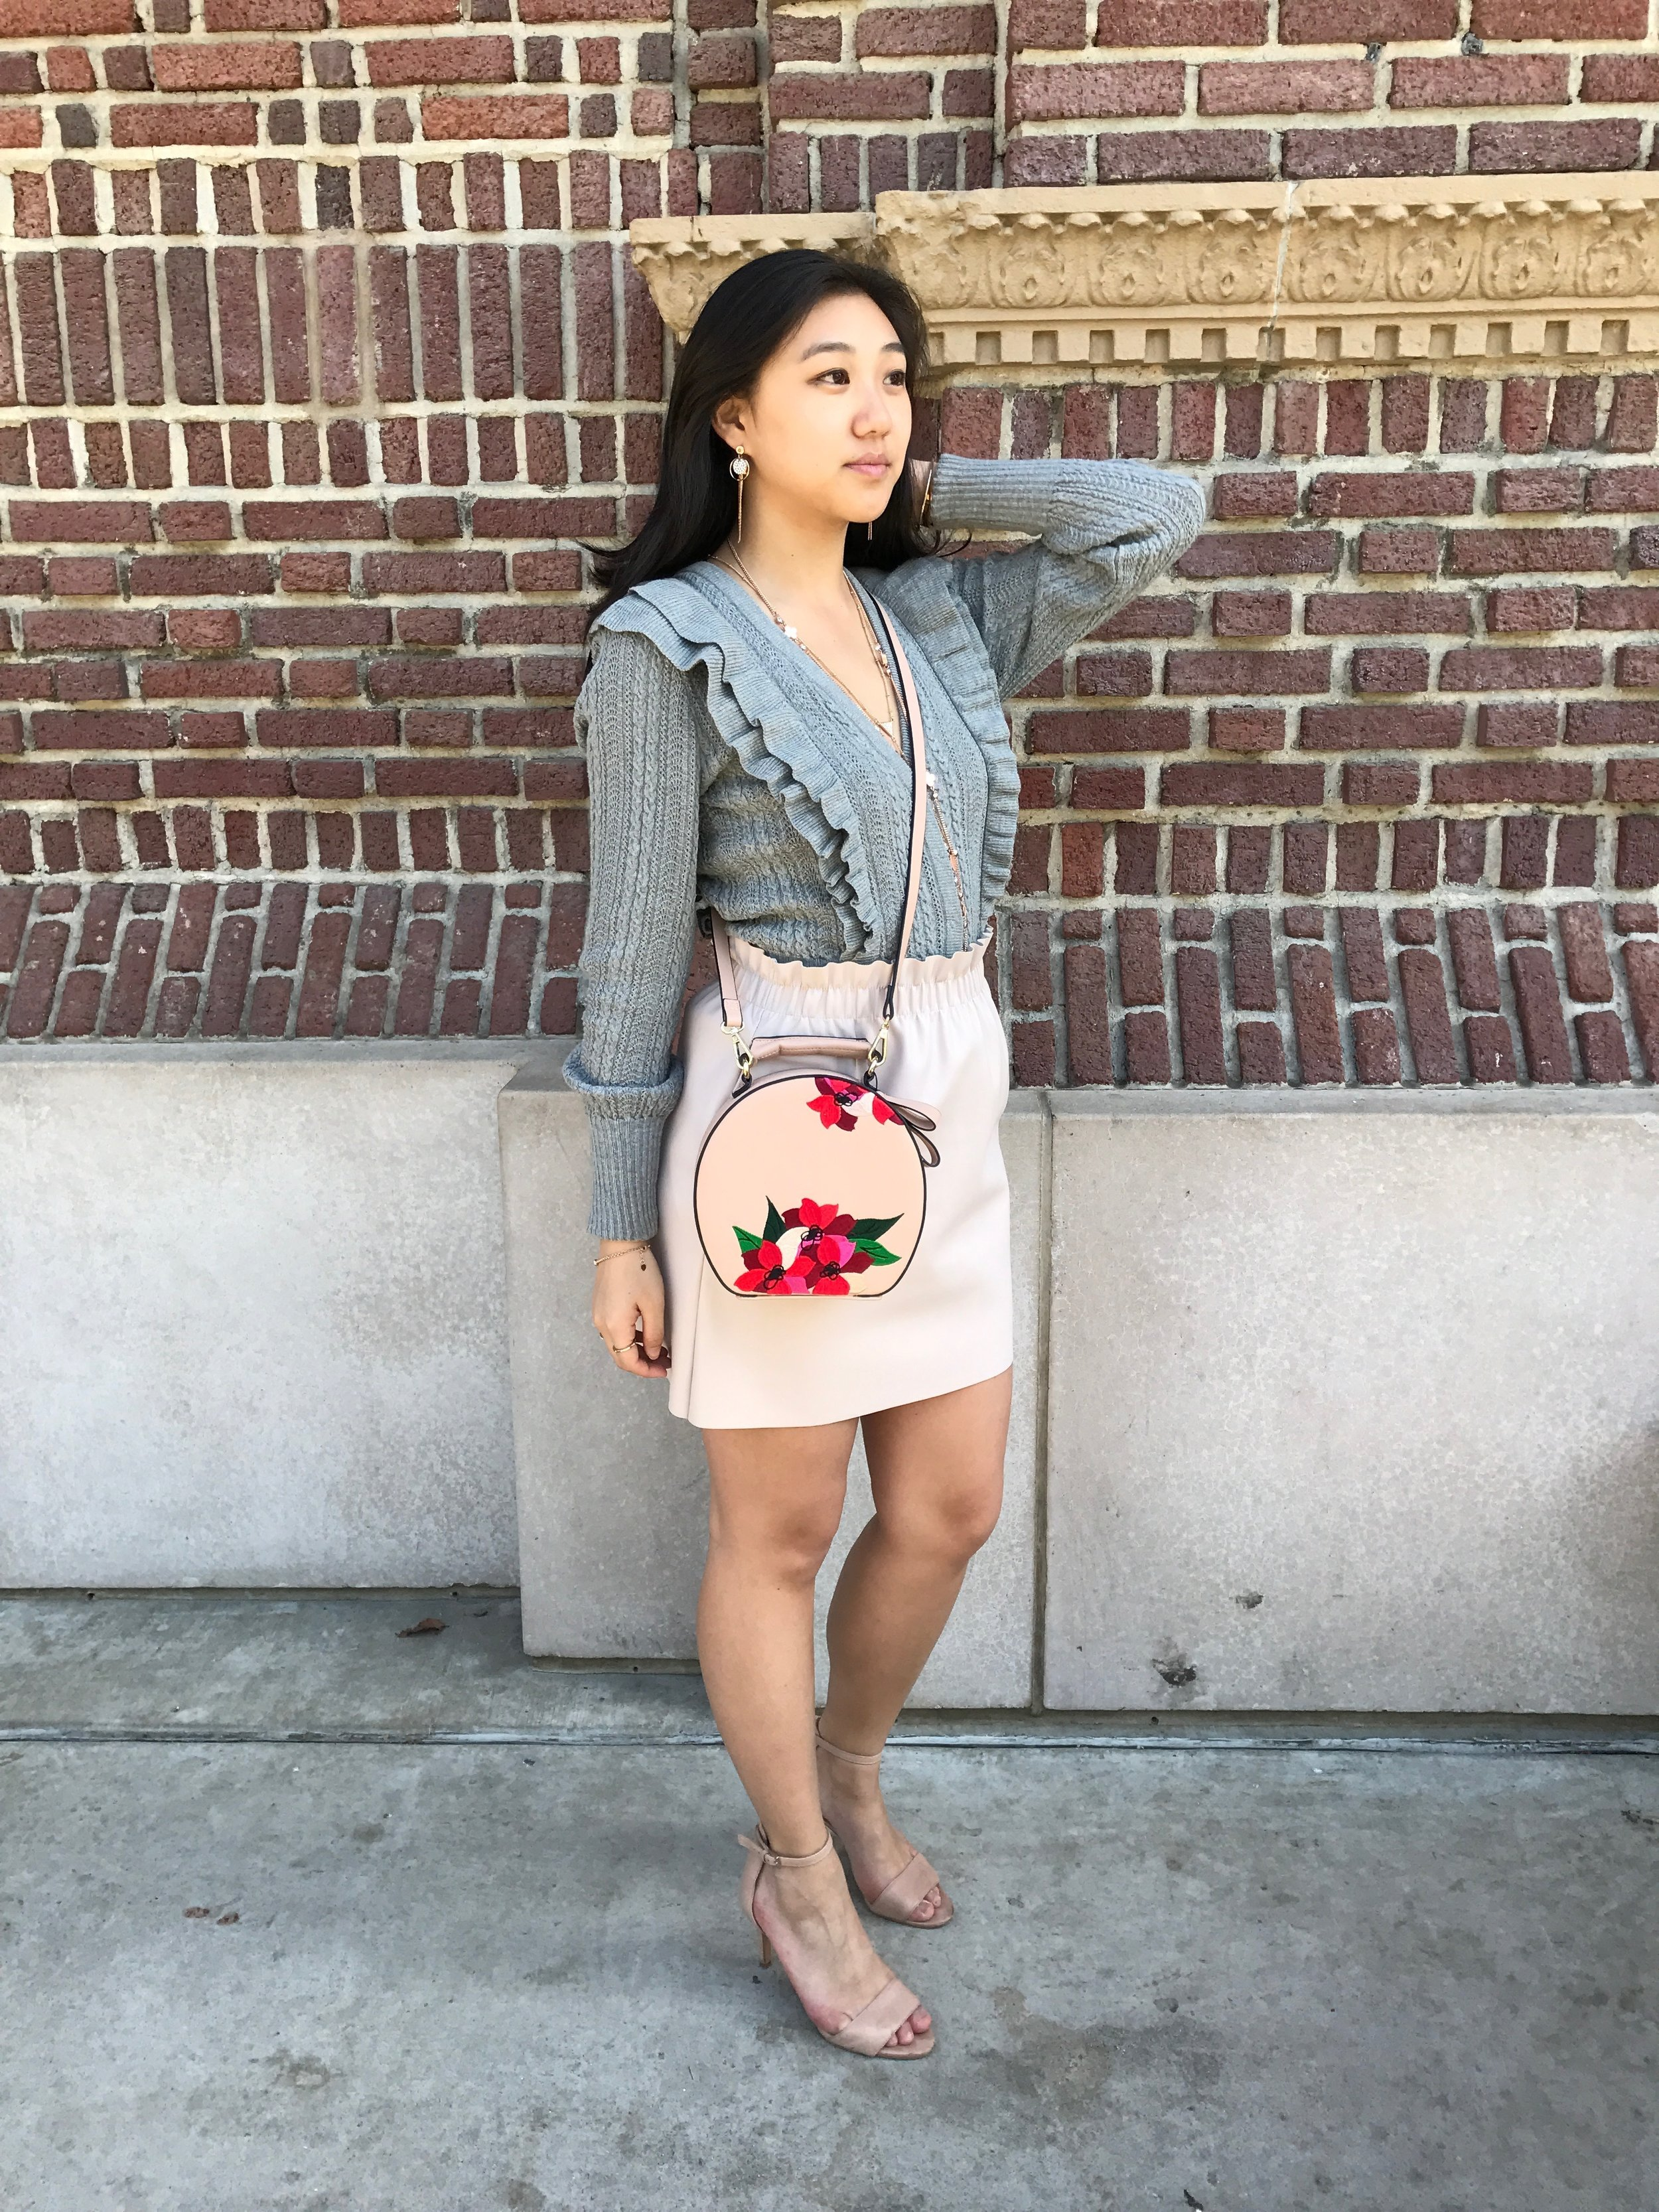 Cardigan:  H&M  | Black Skirt:  Lord & Taylor  | Pink Skirt: similar  here  and  here